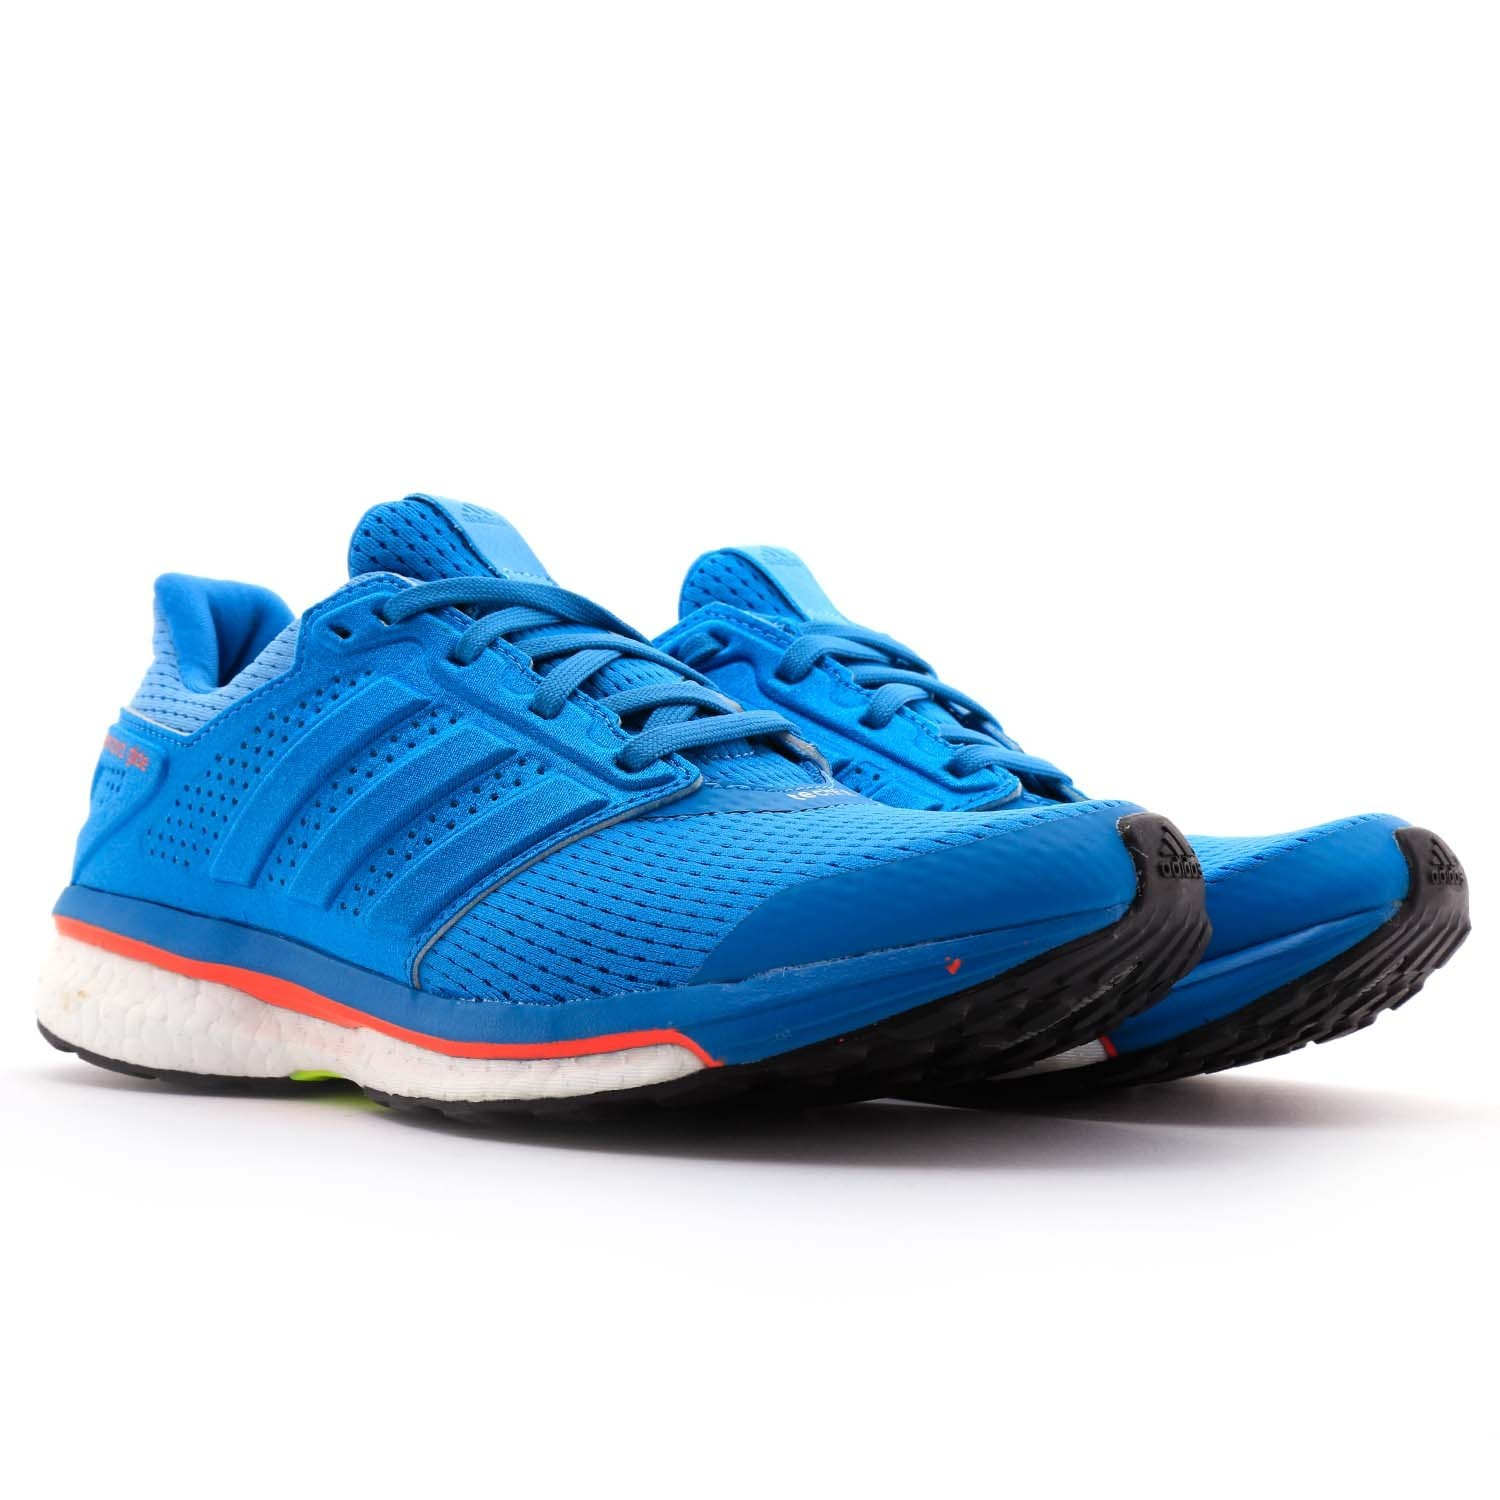 Adidas Glide Boost 8 Mujer